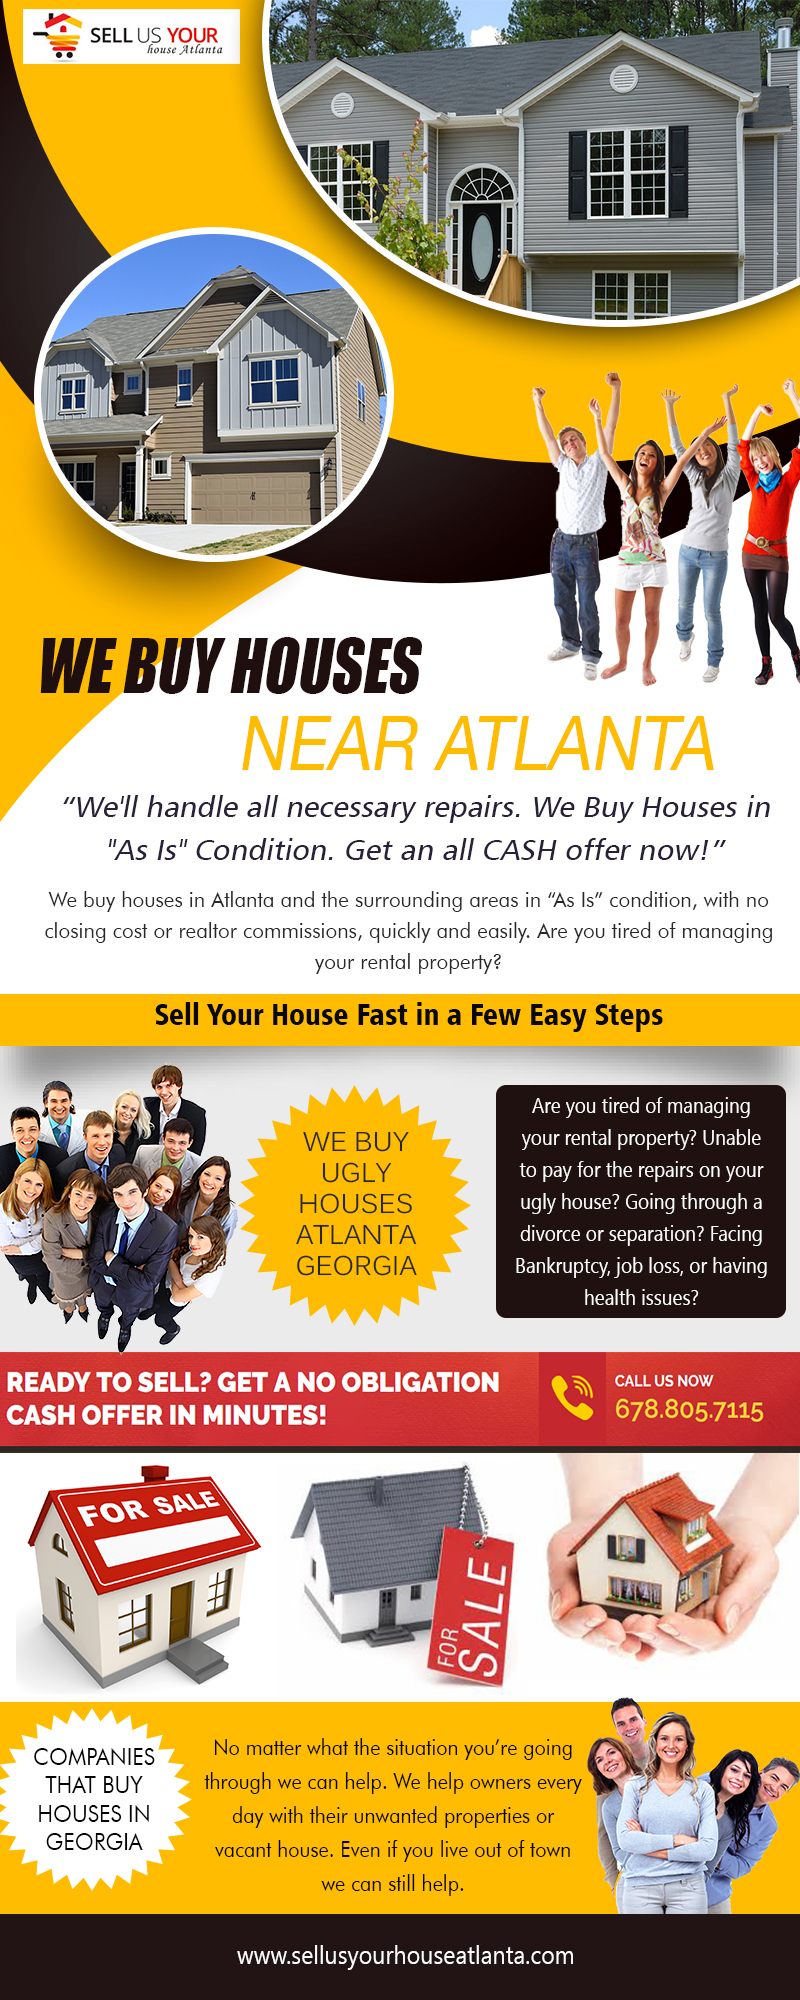 We Buy Houses|www.sellusyourhouseatlanta.com|6788057115